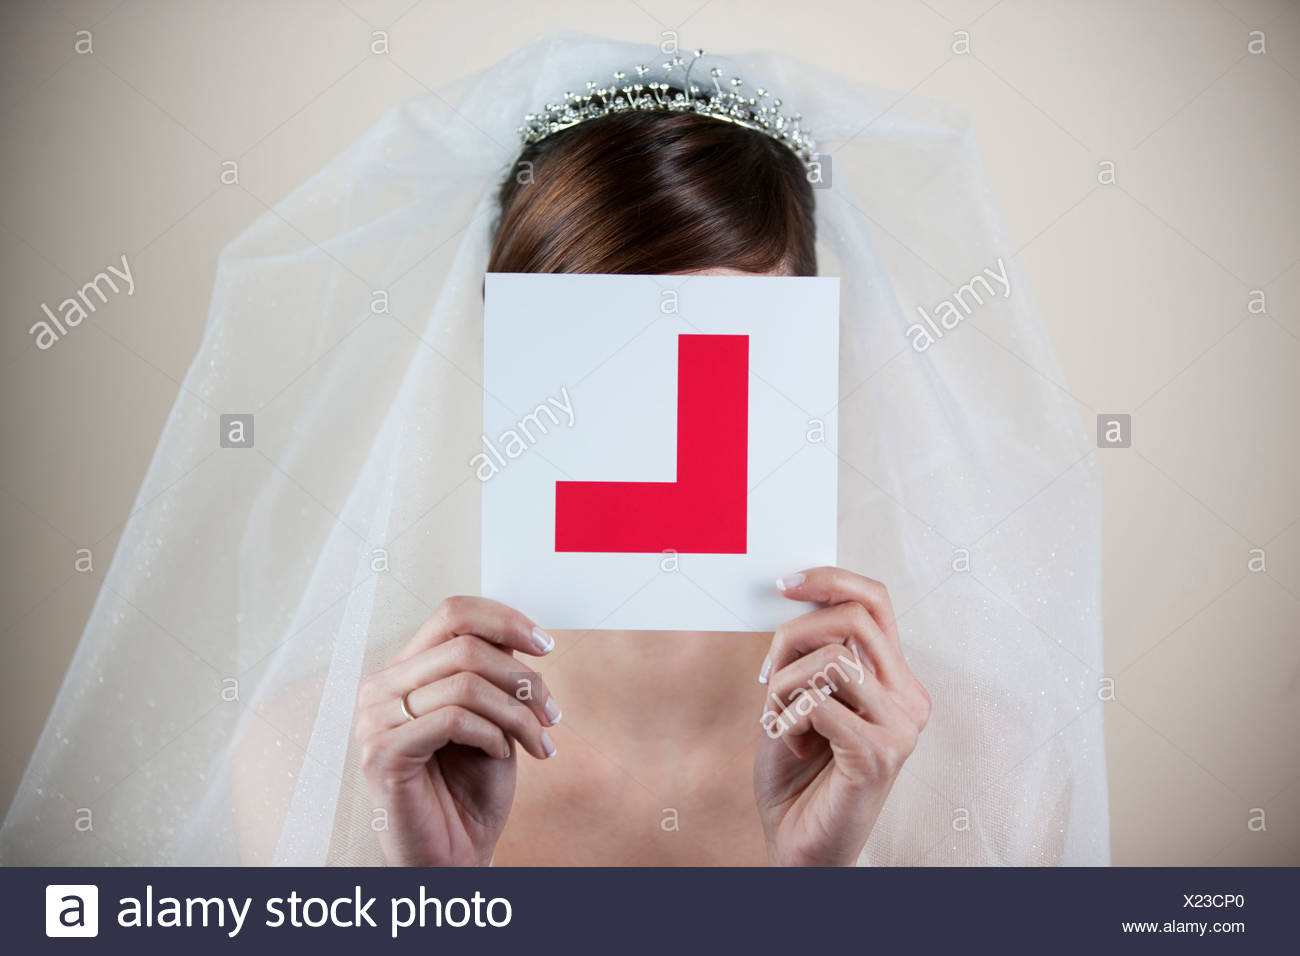 A young bride holding a learner permit plate in front of her face - Stock Image